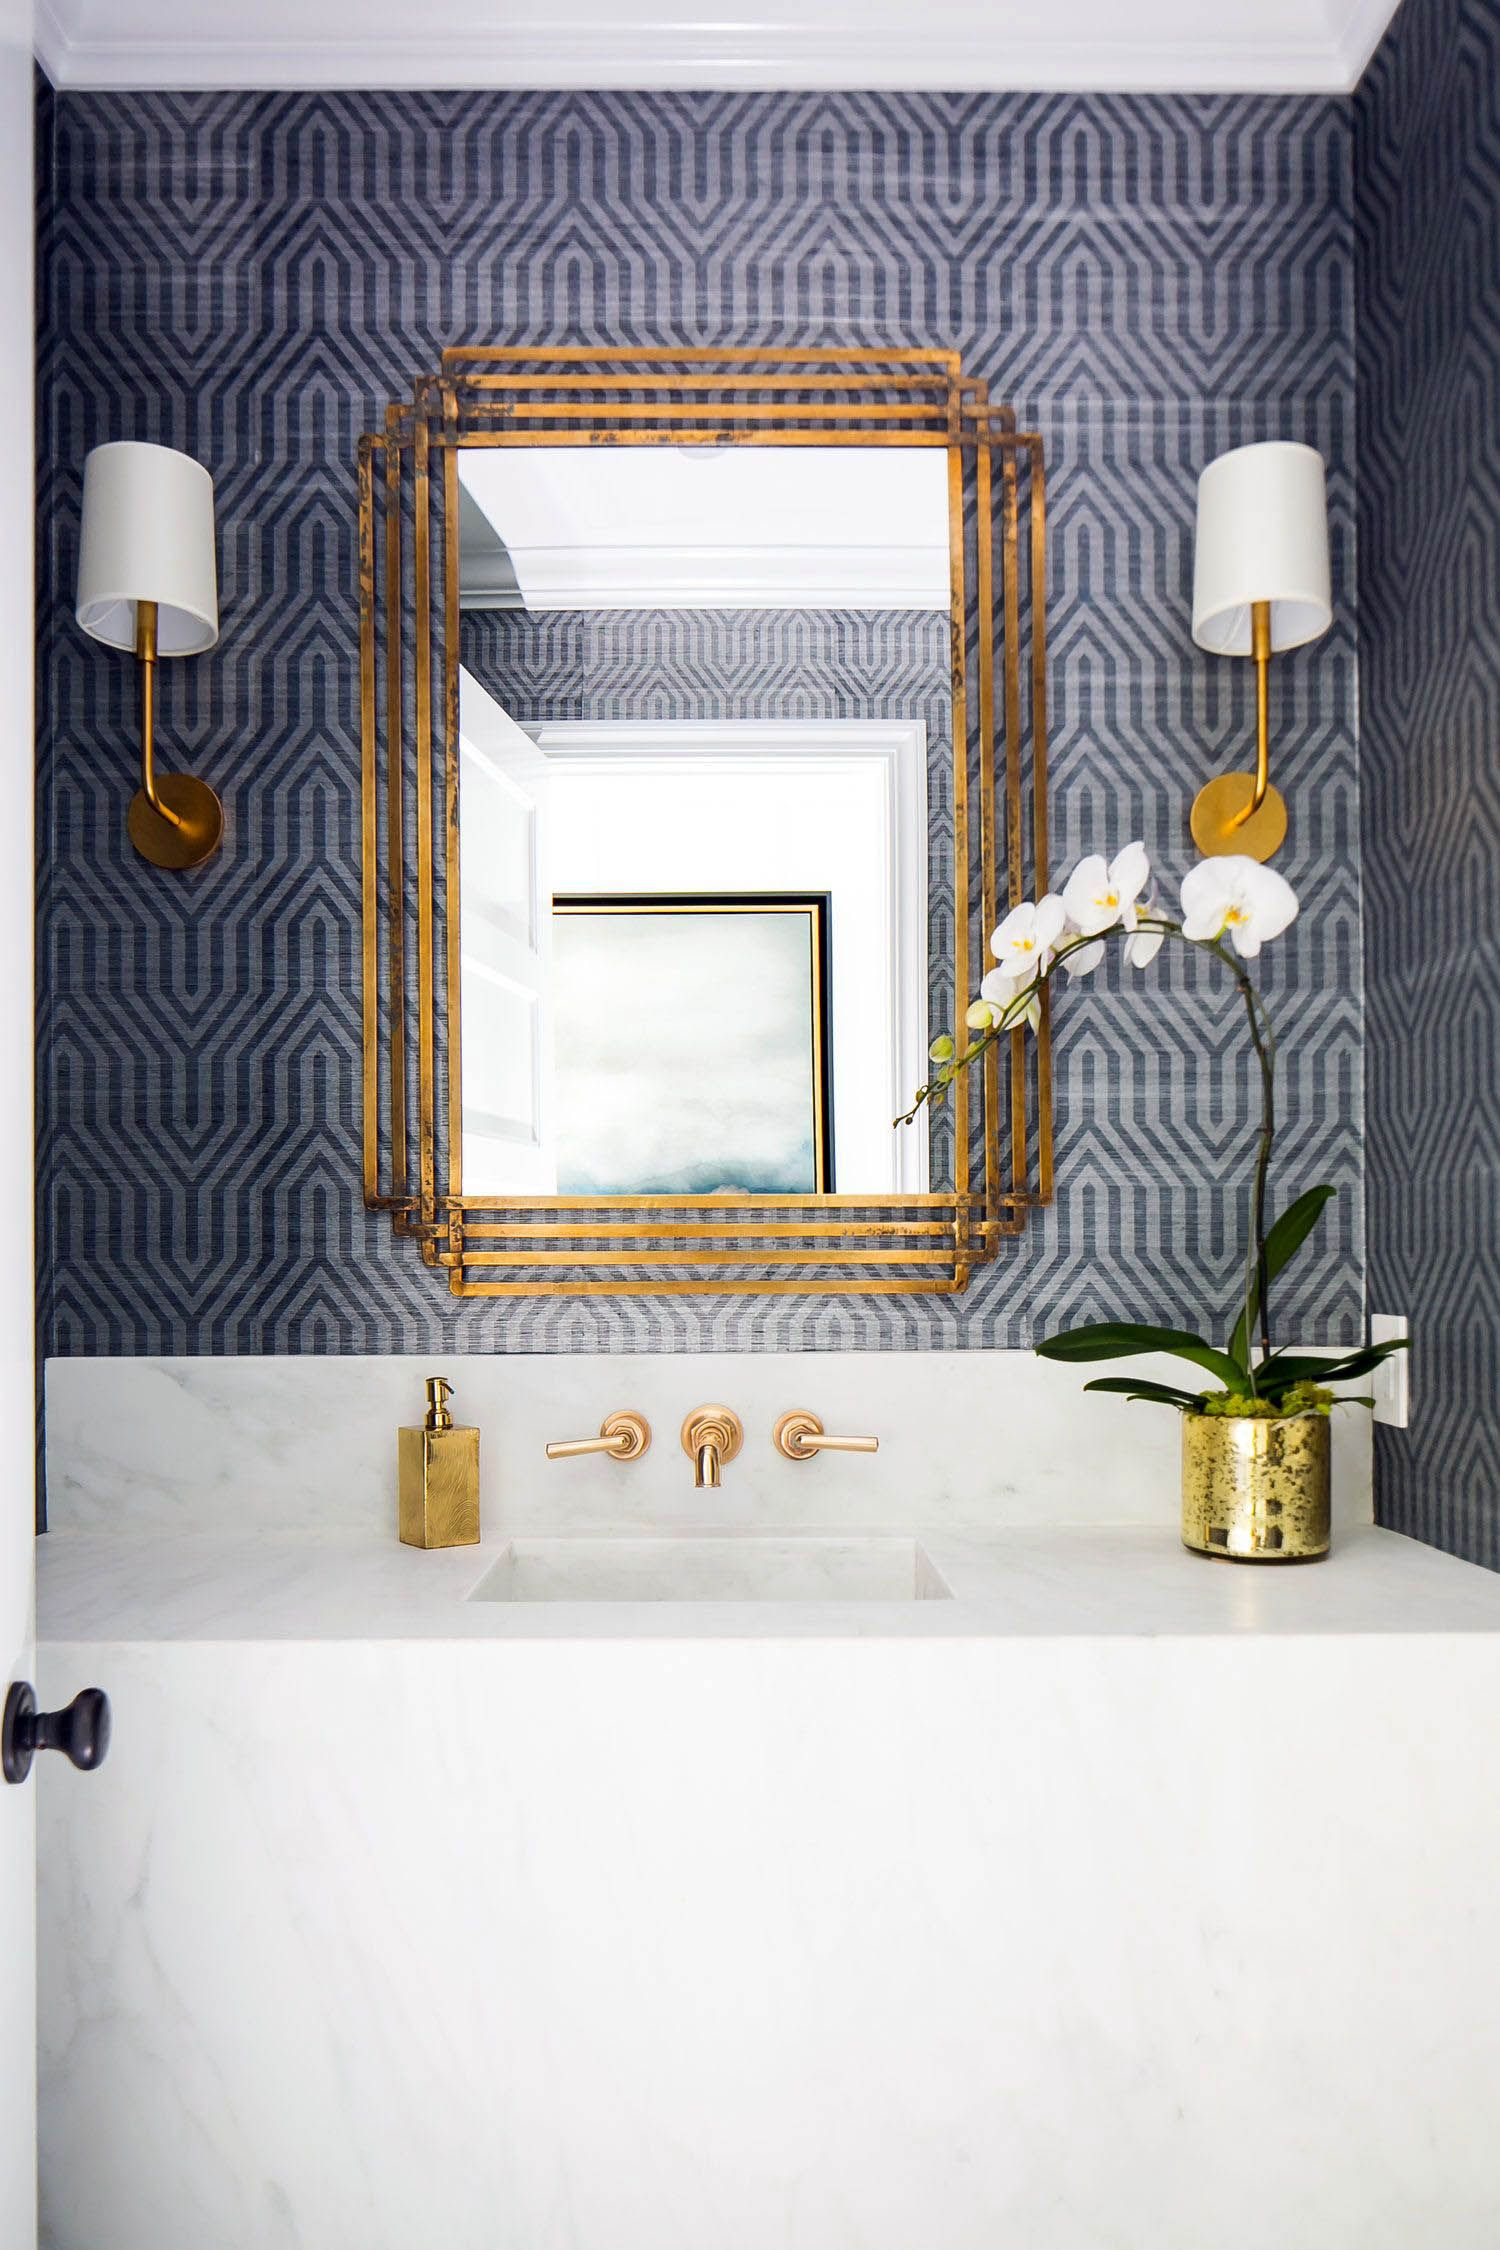 Recent Powder Room Decorating Ideas Hgtv Only On Neuronhome